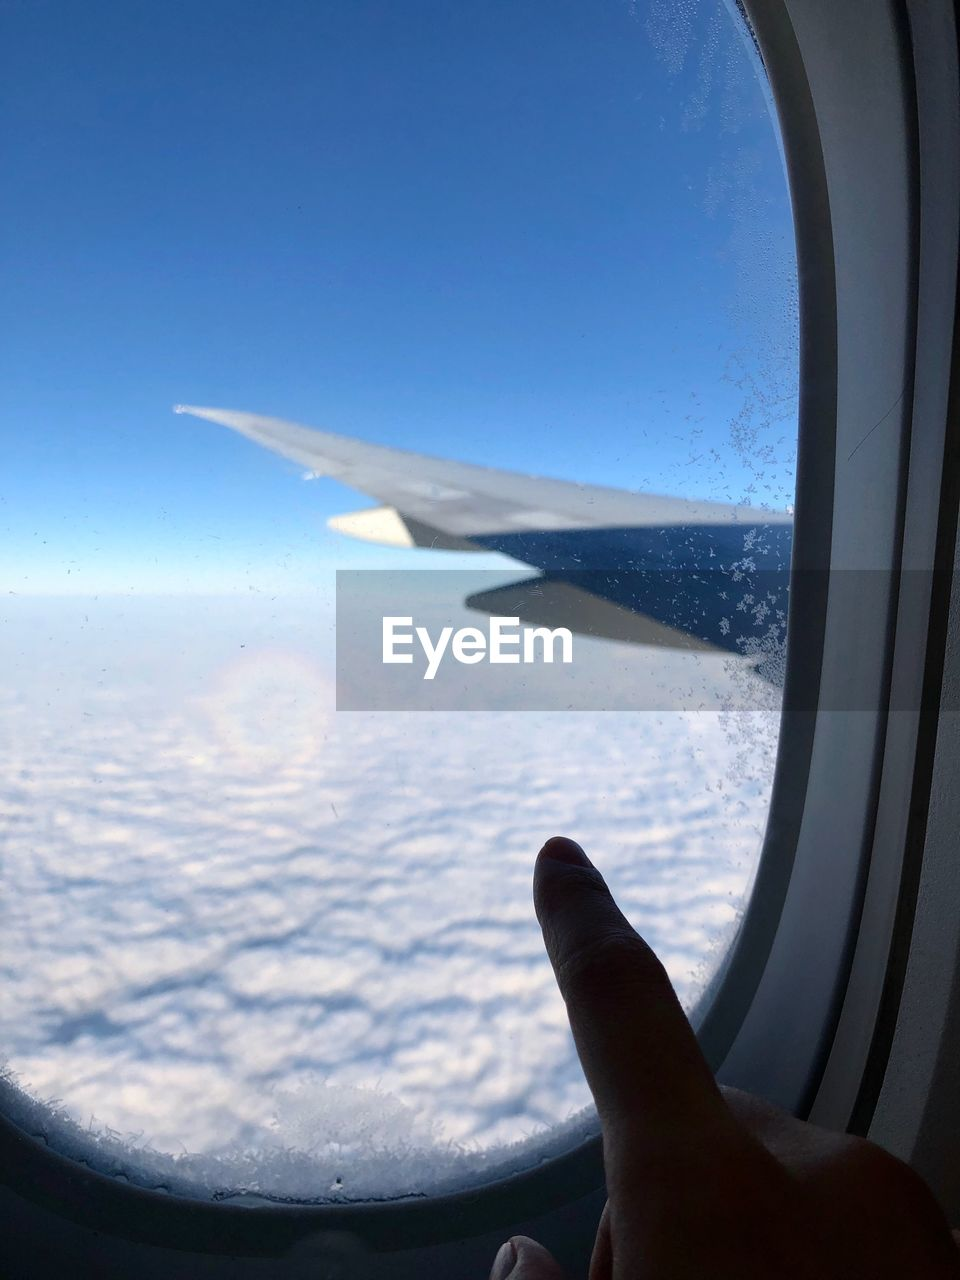 air vehicle, airplane, transportation, mode of transportation, sky, flying, window, glass - material, transparent, vehicle interior, human body part, travel, human hand, journey, mid-air, hand, aircraft wing, one person, blue, motion, body part, finger, outdoors